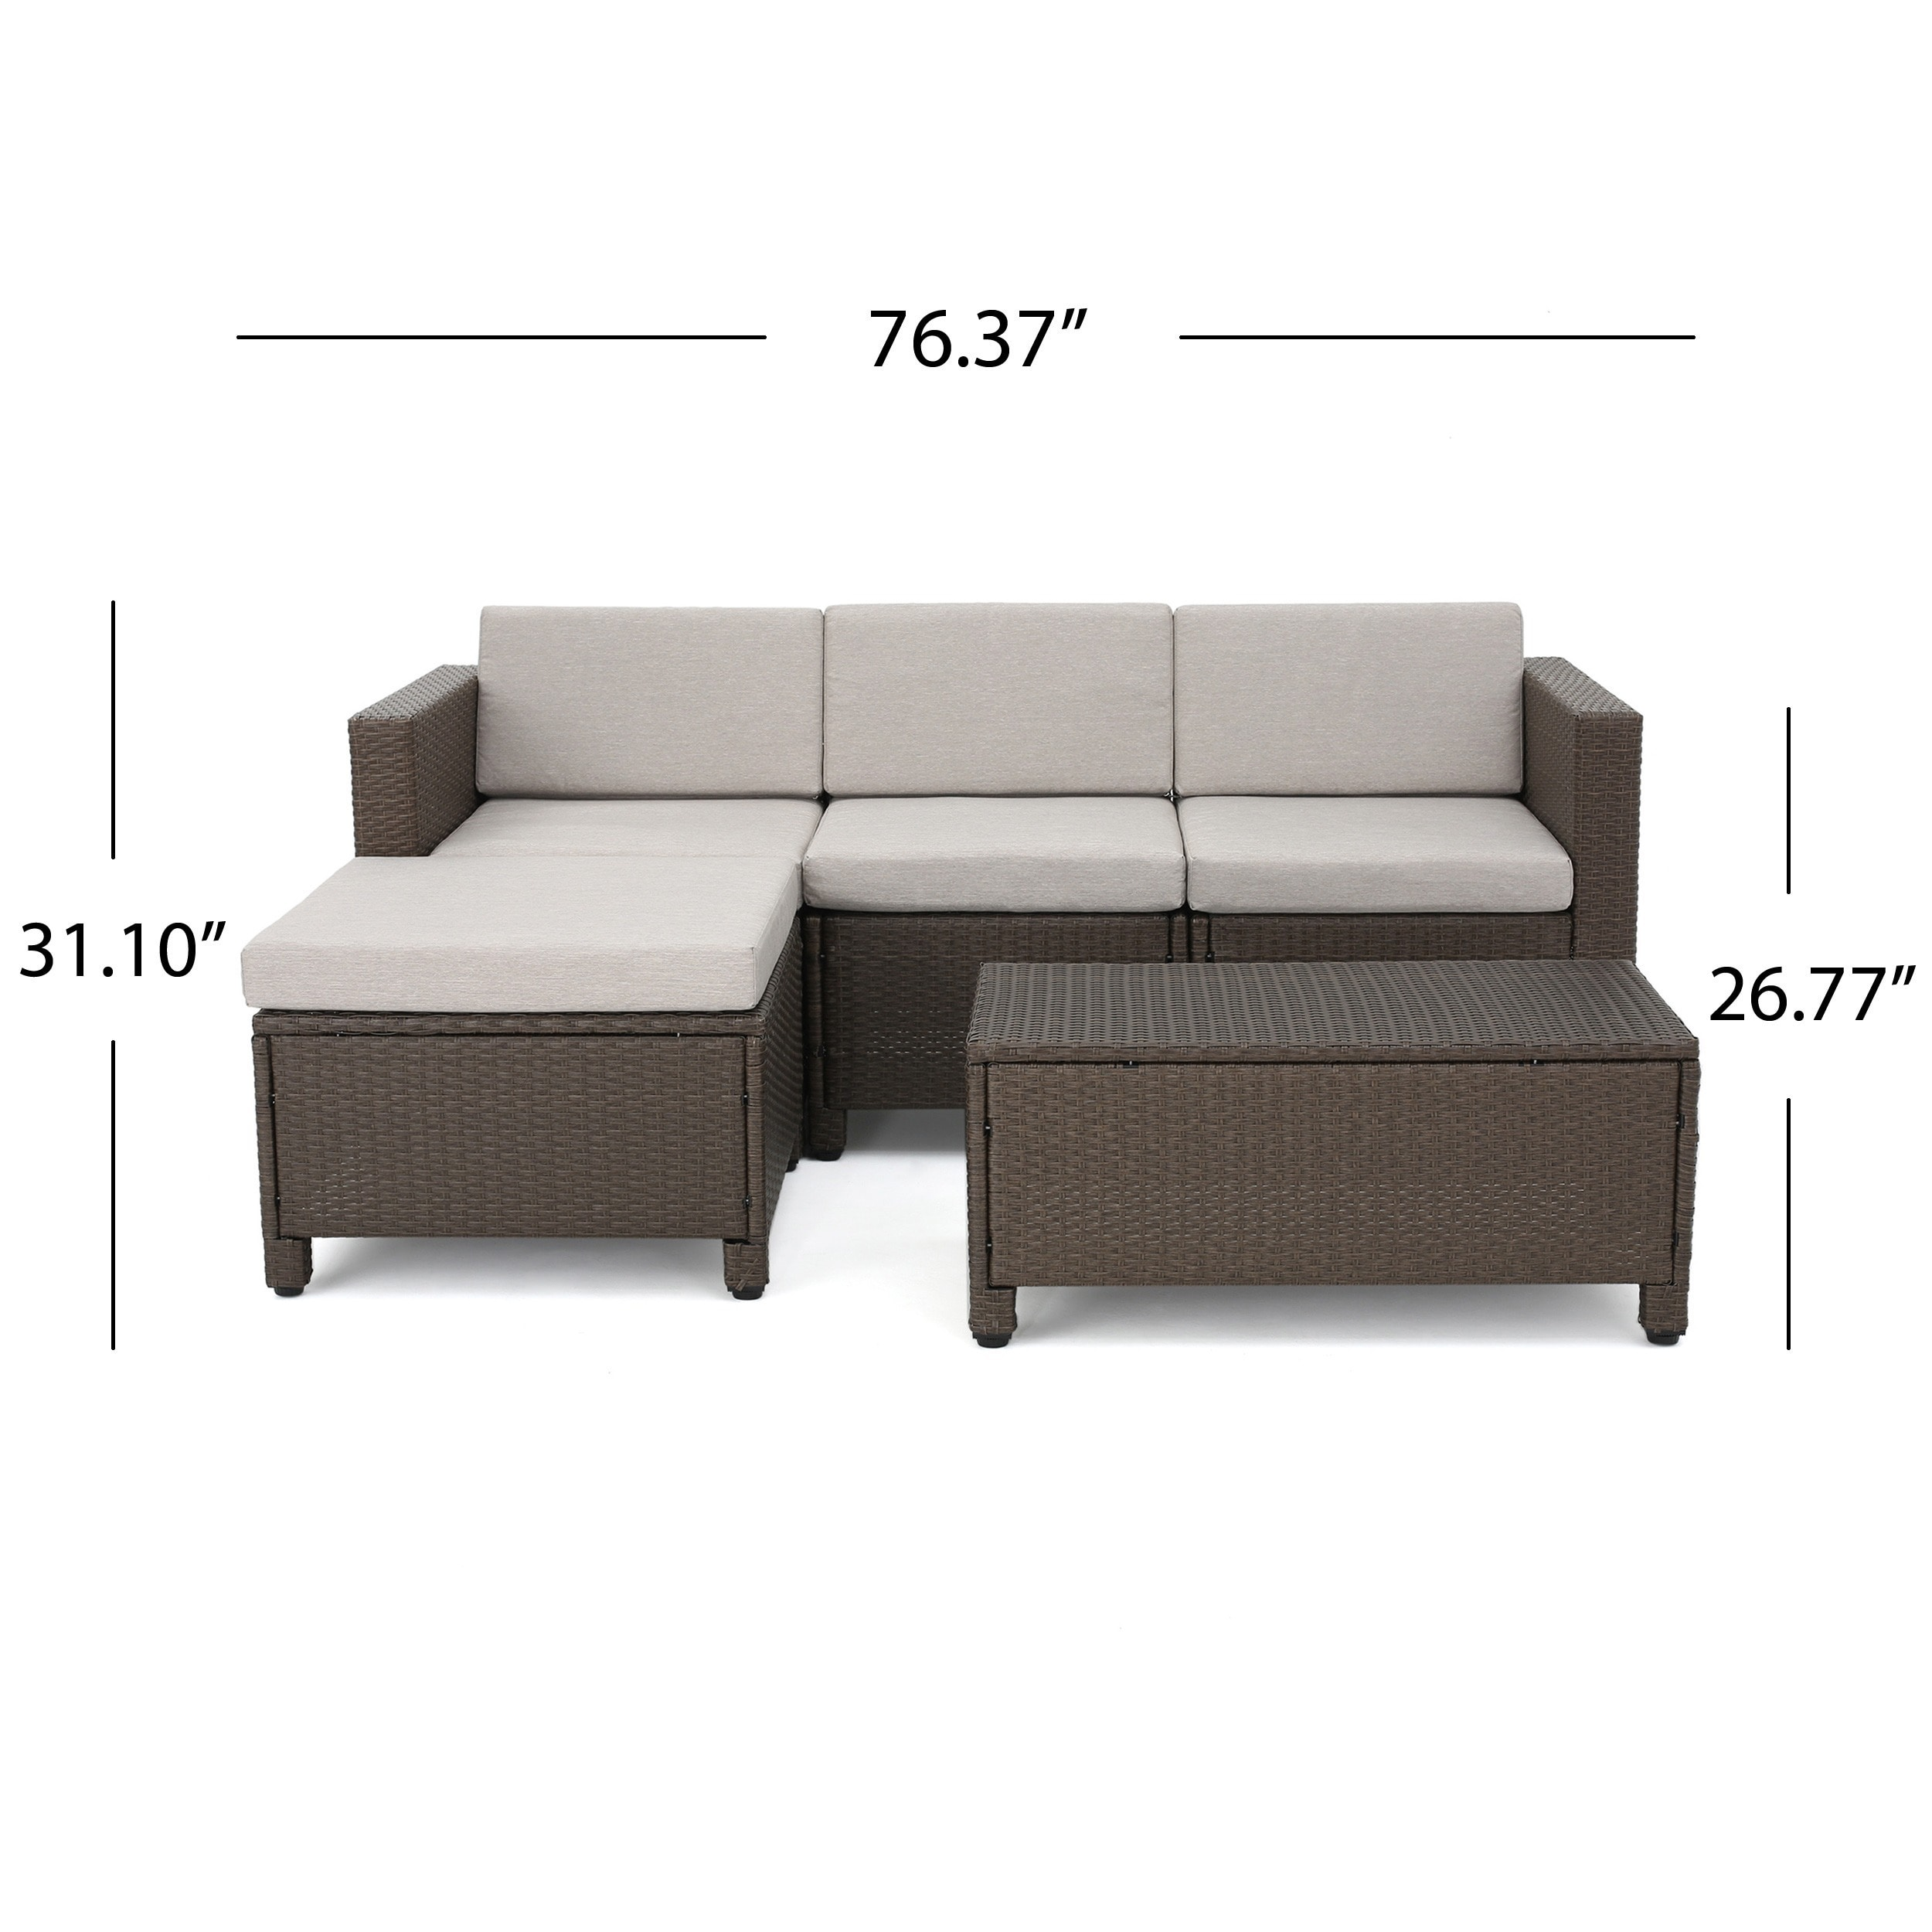 Shop Christopher Knight Home Outdoor Puerta 5 Piece Wicker Sectional Sofa  Set With Cushions   On Sale   Free Shipping Today   Overstock.com   20603202